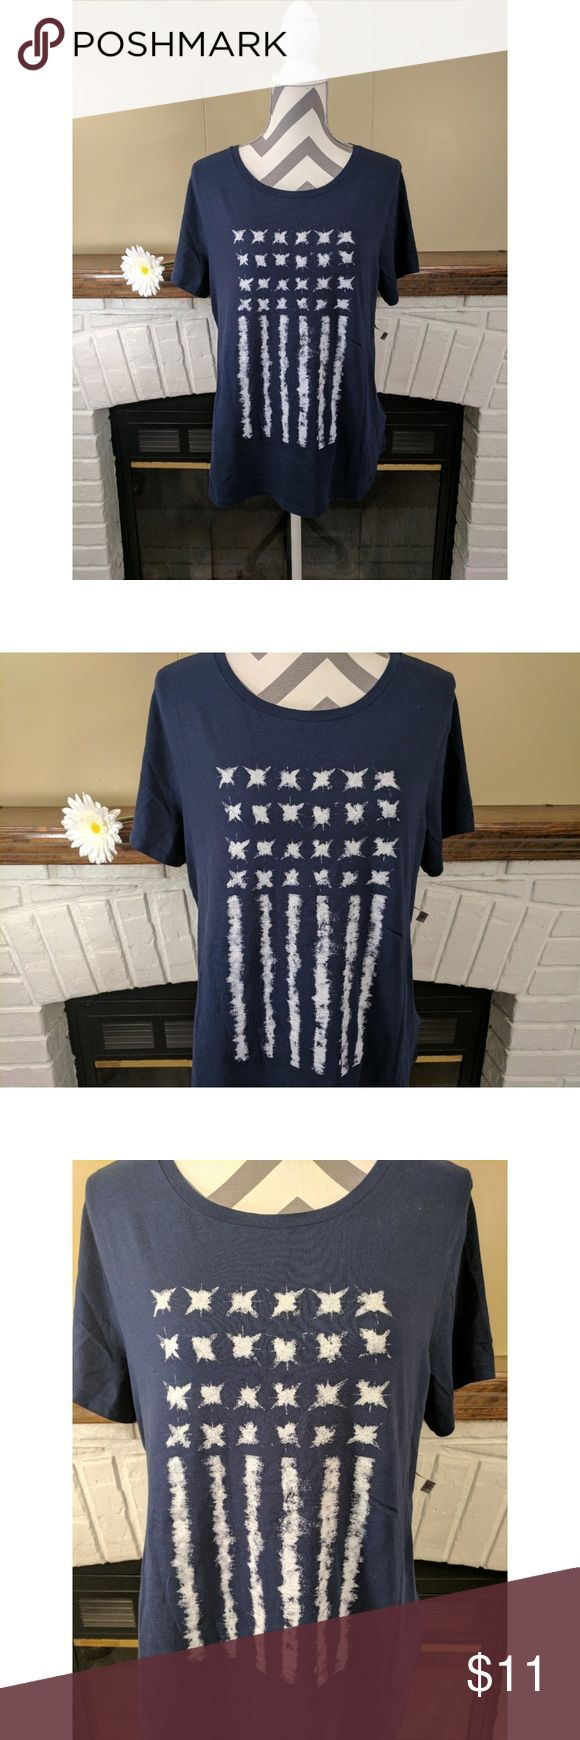 """EveryWear Americana Tee NWT EveryWear Americana Tee with a blue and white flag pattern  - Rib-knit crew neck - Short sleeves - Tag-free for added comfort - Soft, medium-weight jersey - 100% cotton - Measurements laying flat @ bust: 20""""; length: 26"""" - Machine wash  🚭 Smoke free home Old Navy Tops Tees - Short Sleeve"""